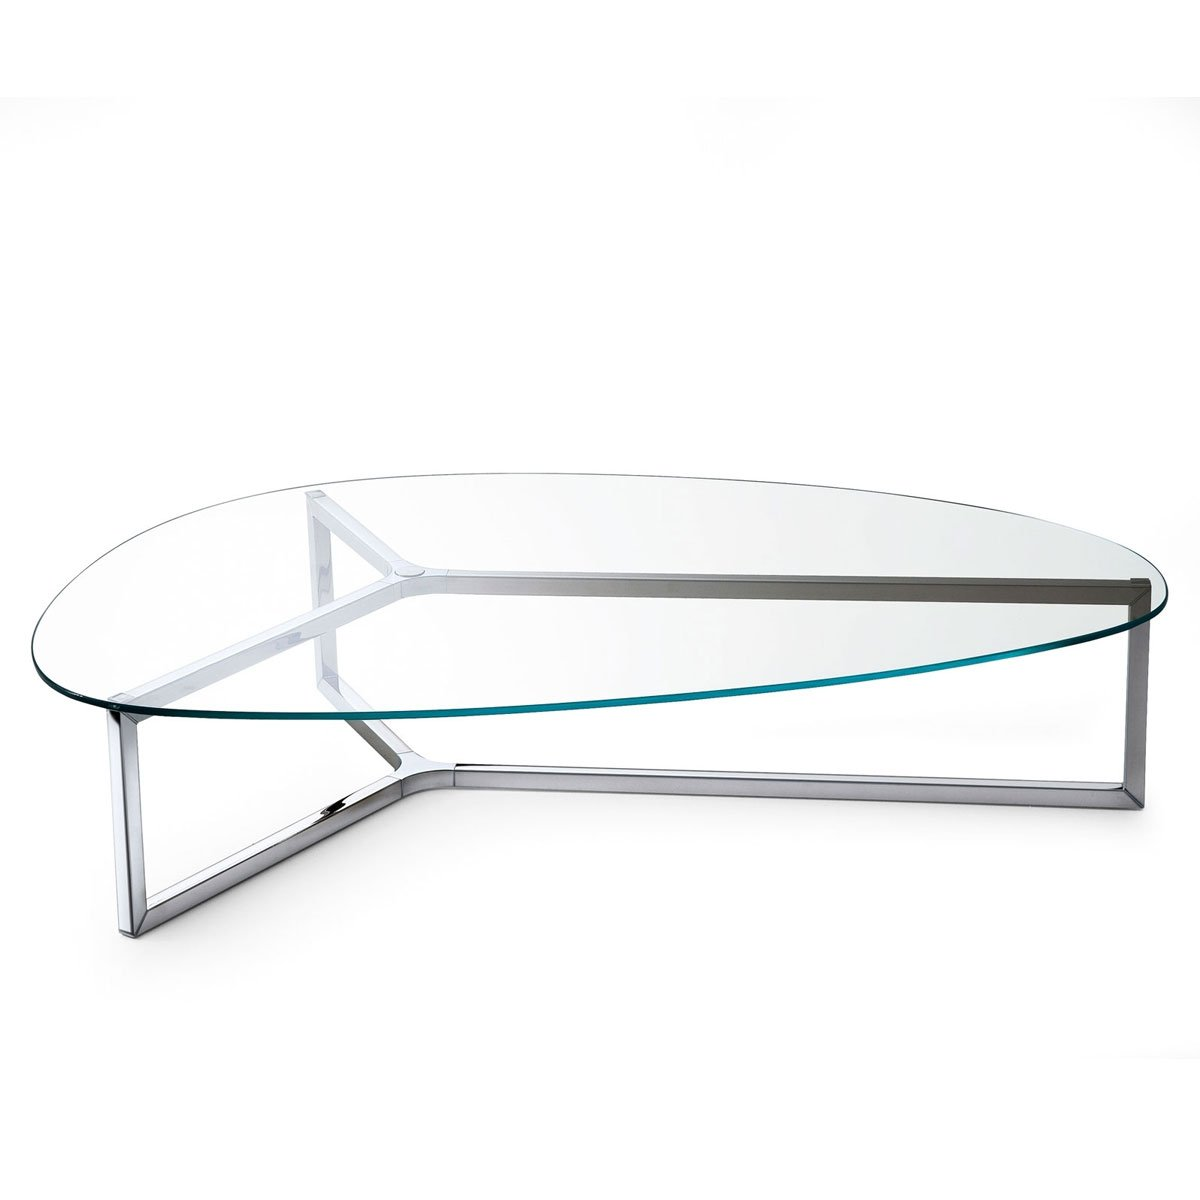 Raj 3 glass and metal coffee table by gallotti radice klarity glass furniture Metal and glass coffee table